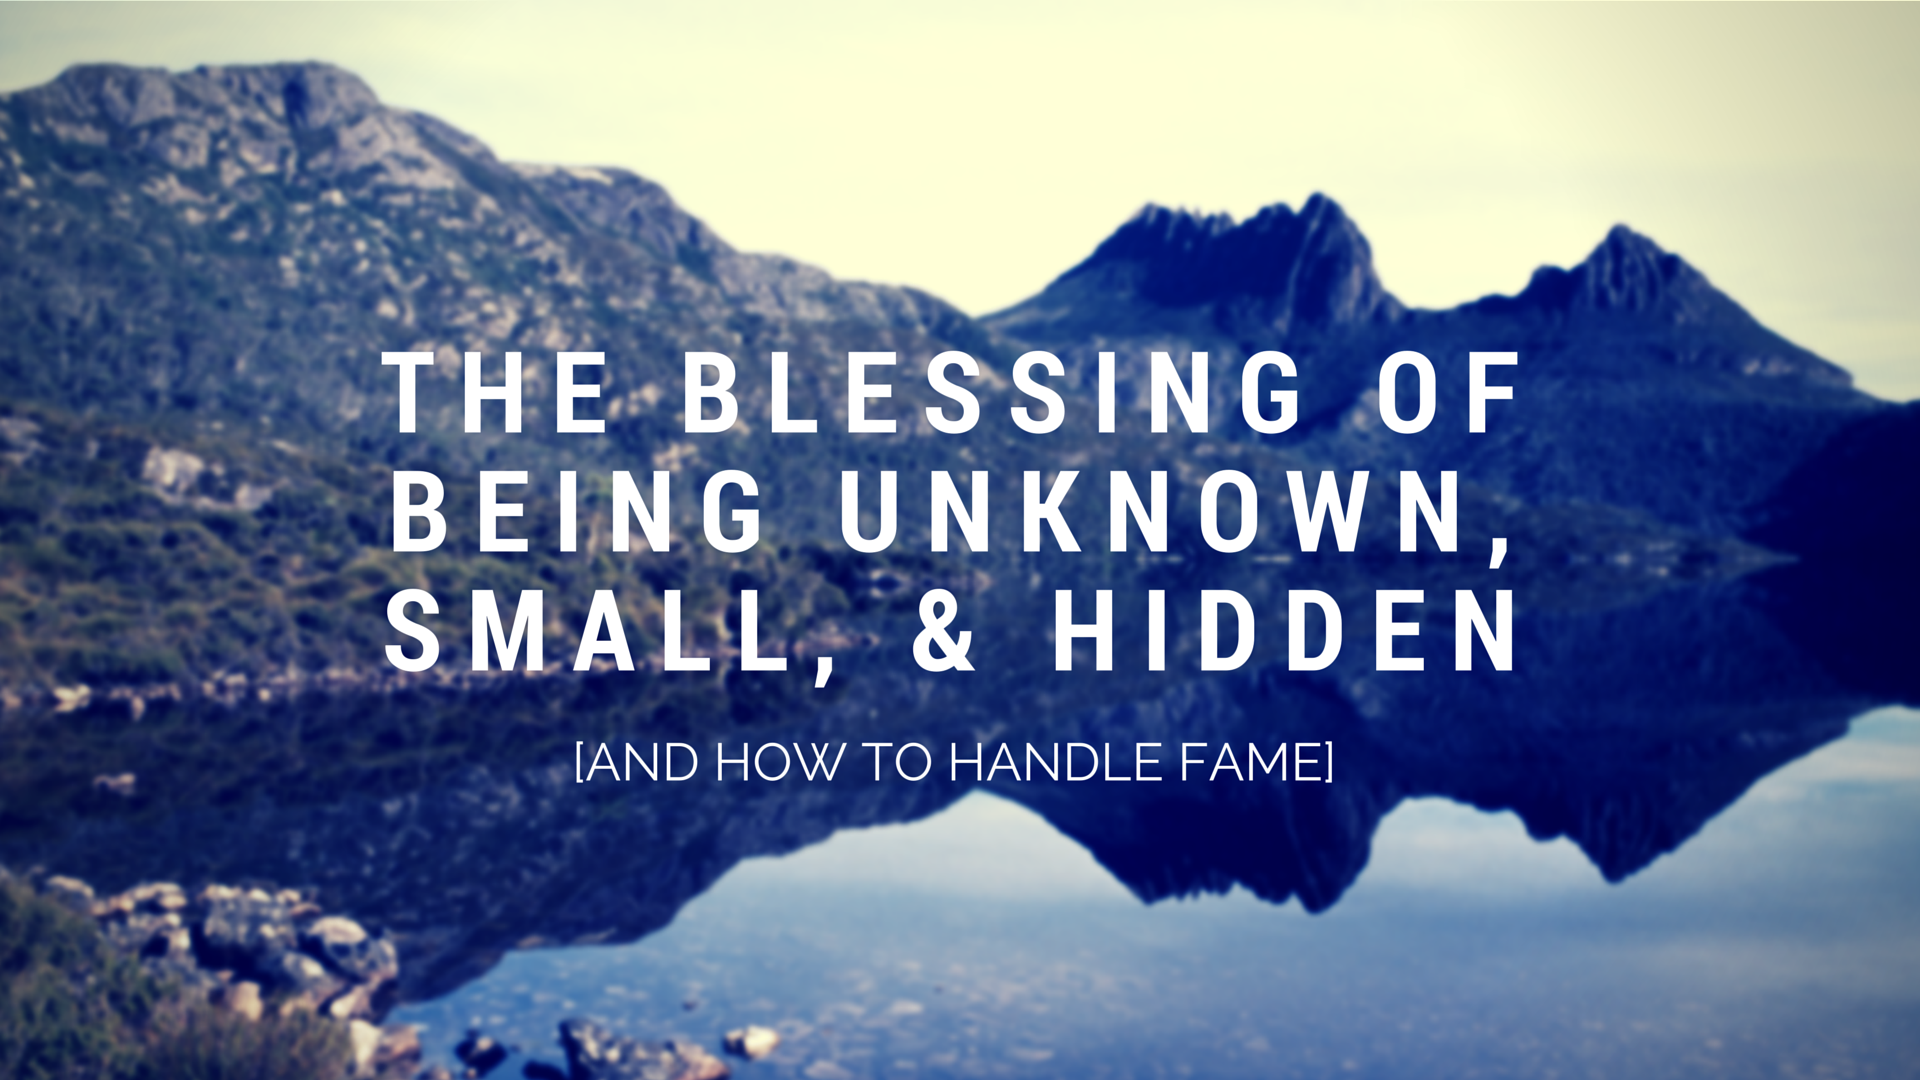 The Blessing Of Being Unknown, Small, & Hidden [And How to Handle Fame]